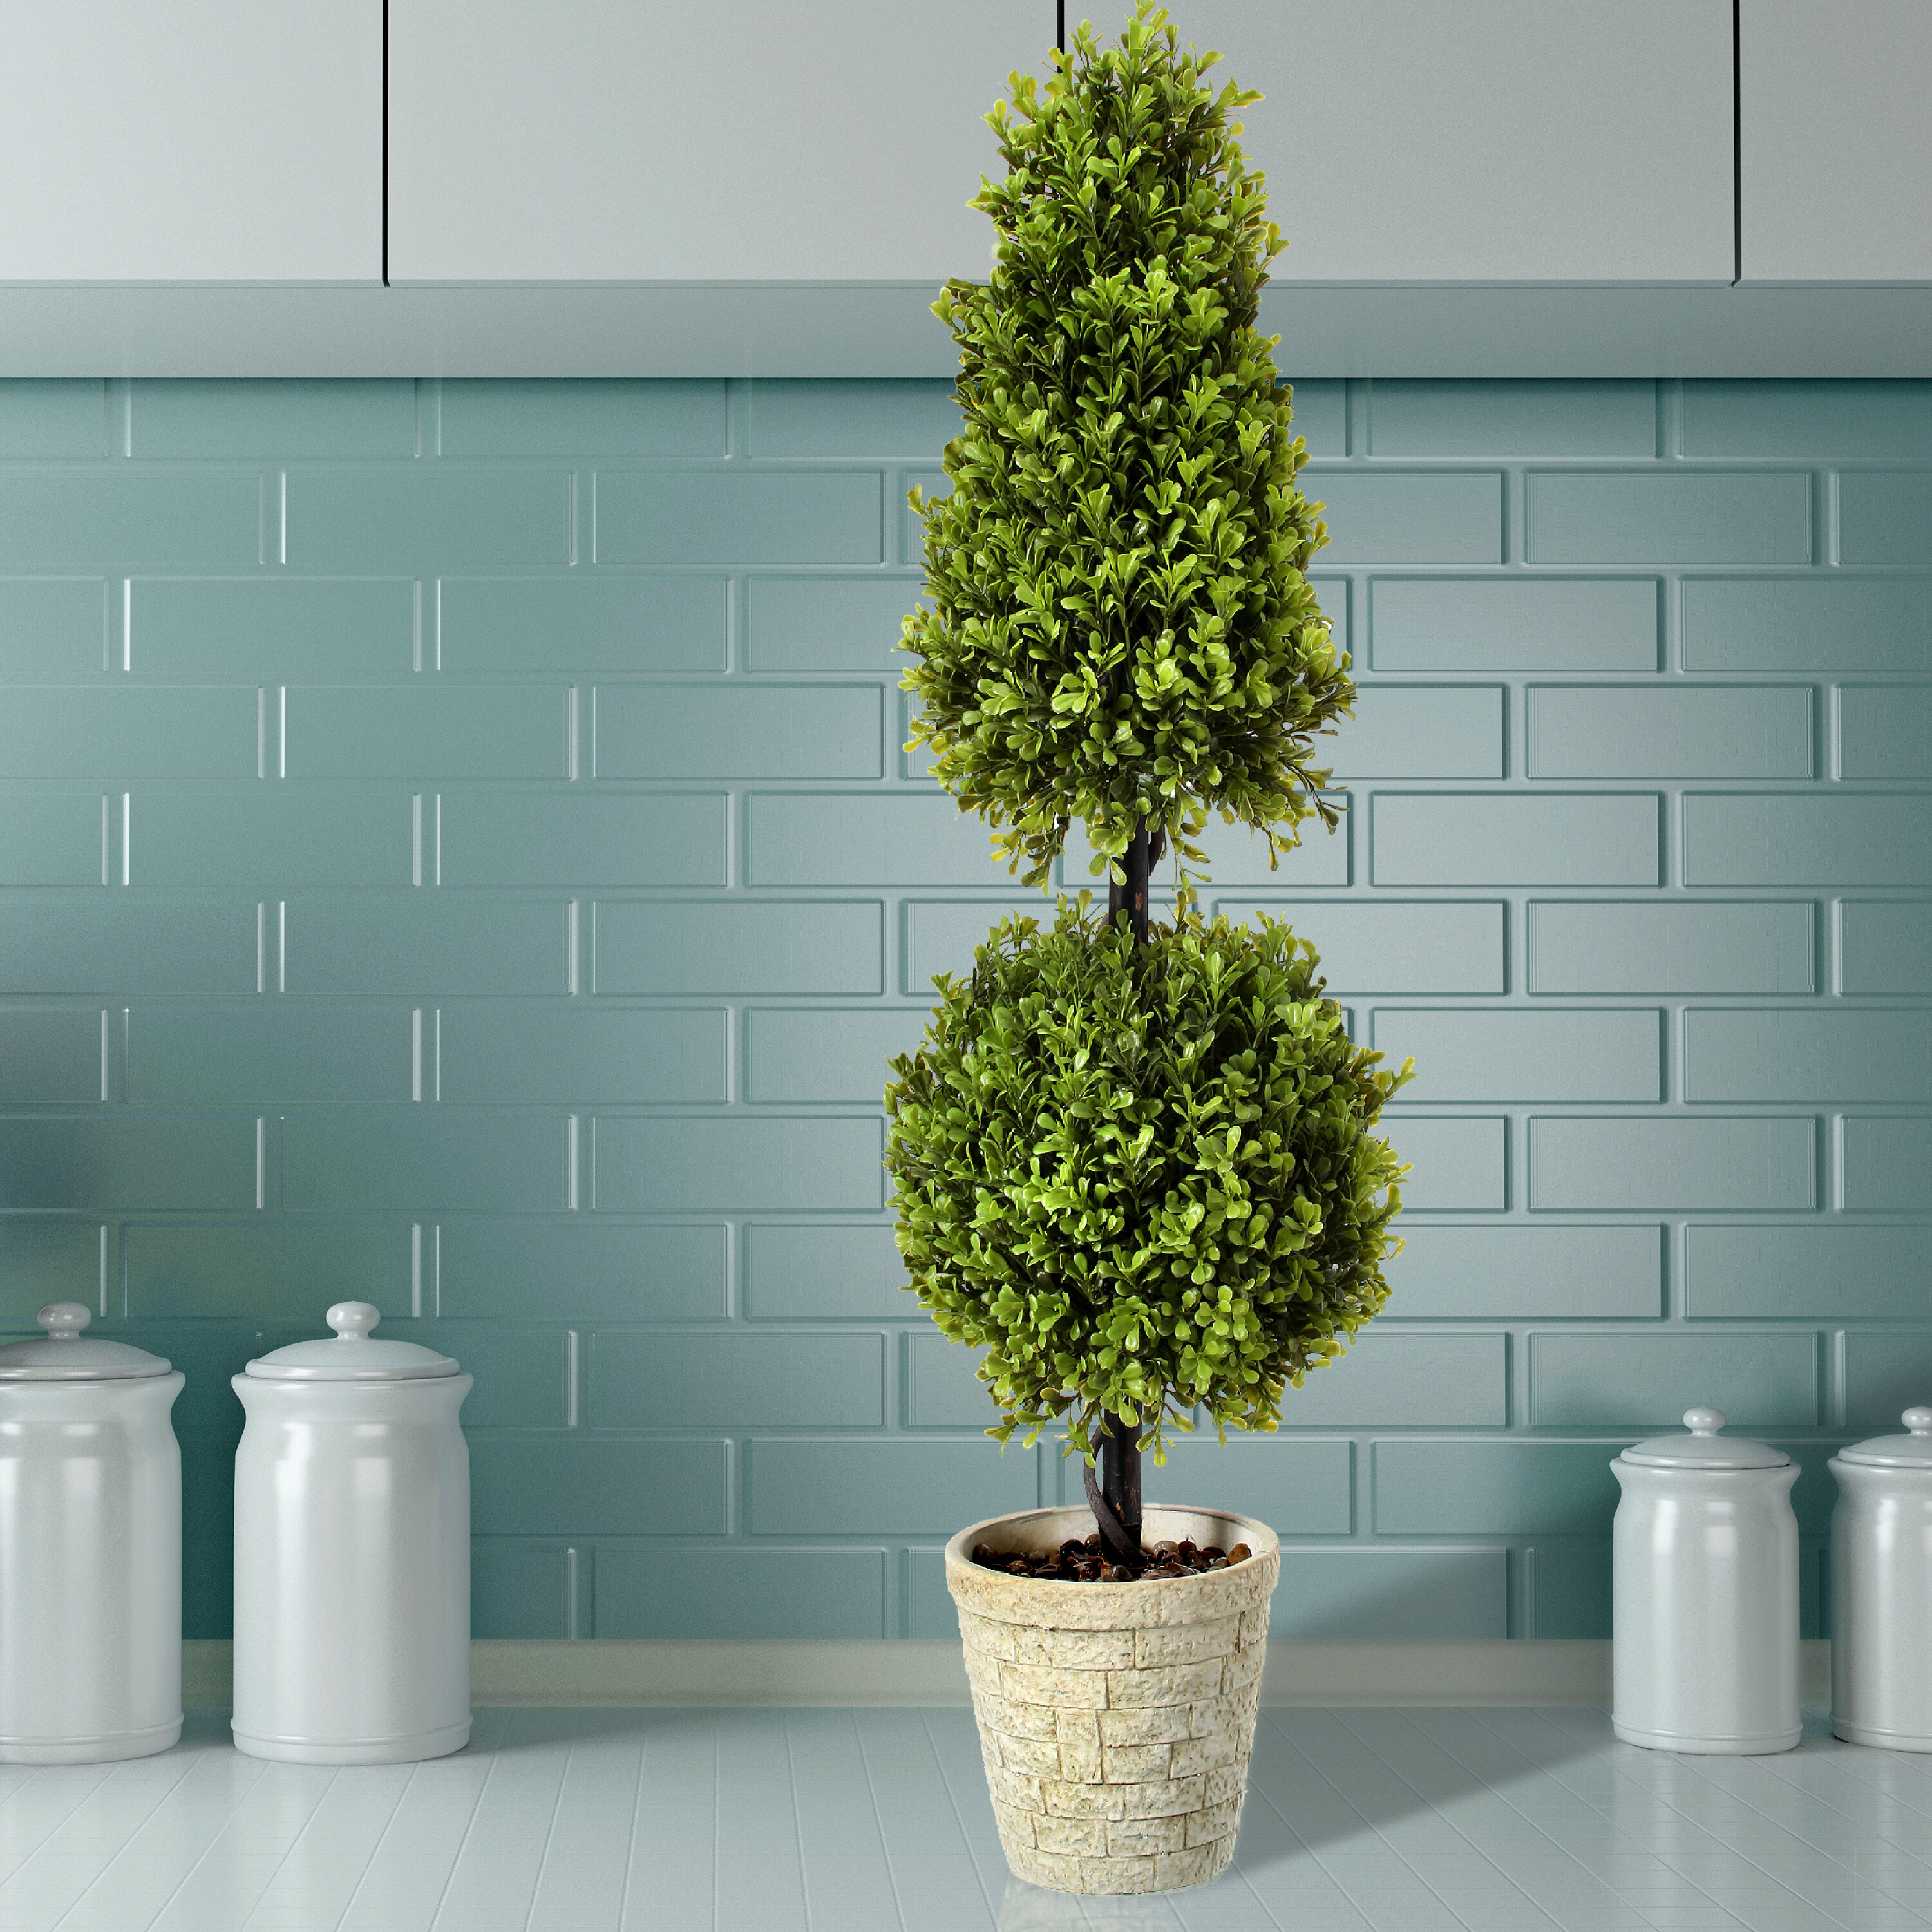 3 ft Artificial Topiary Bay Tree Pair Potted for Outdoor and Indoor Use